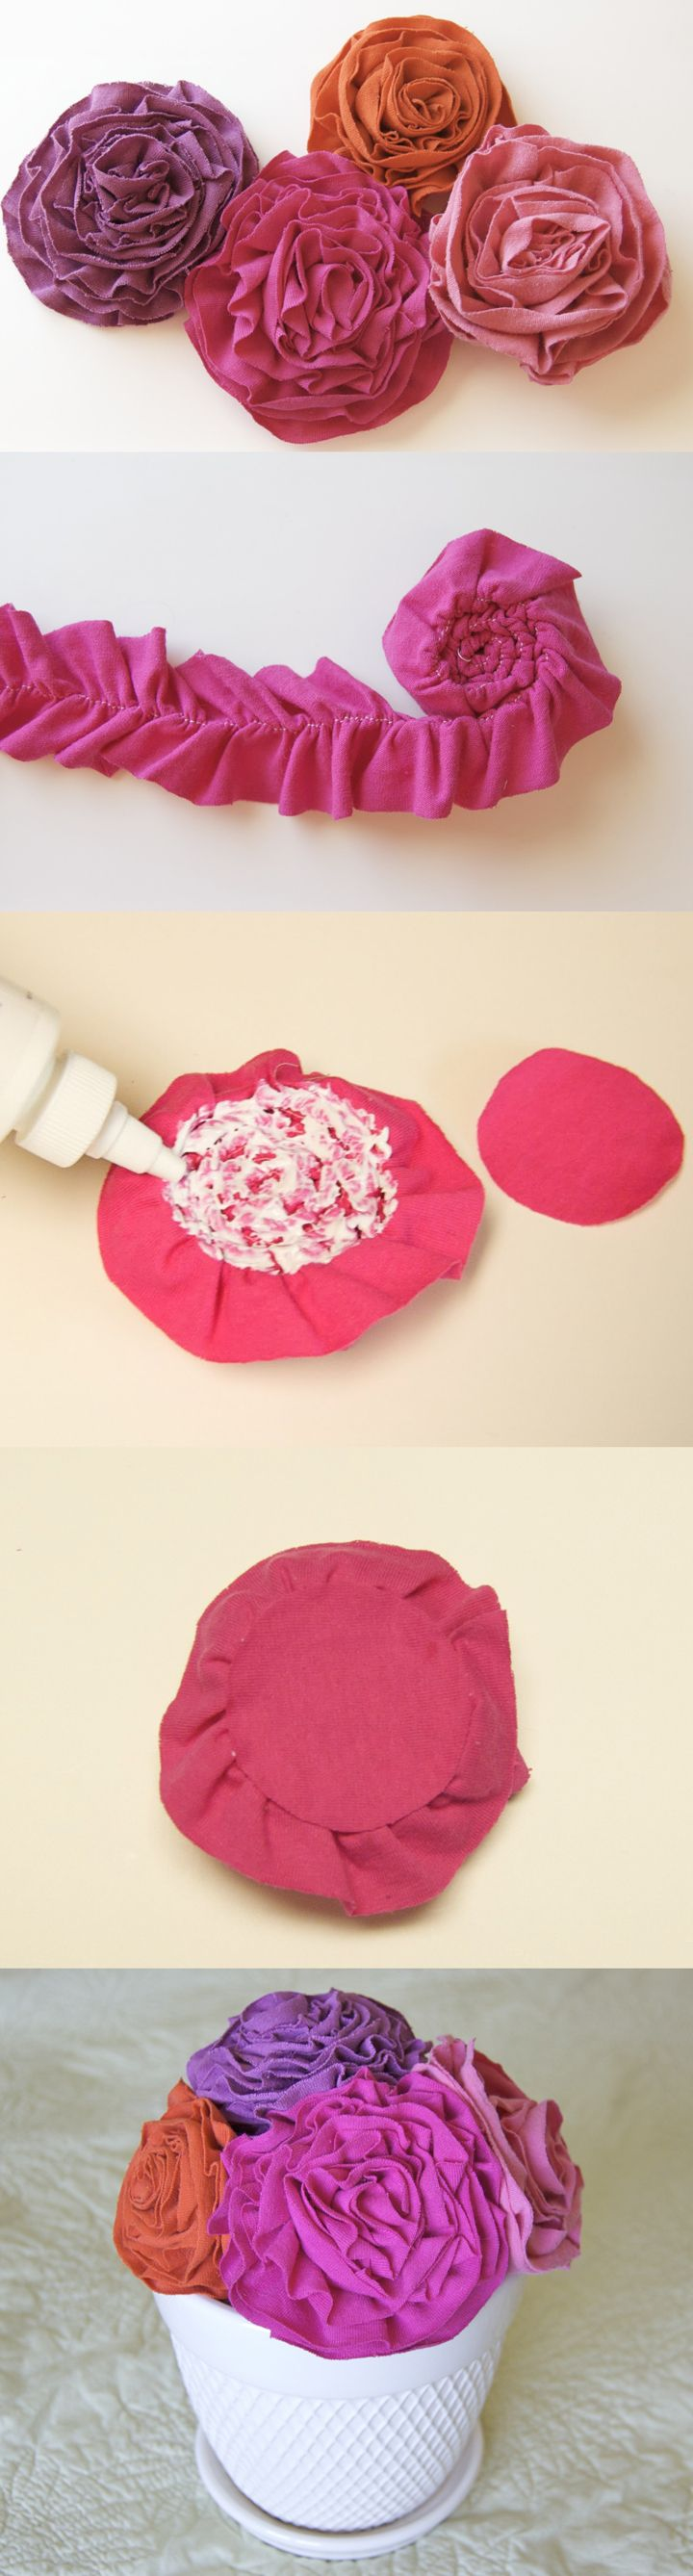 DIY T-shirt Flowers-  love the look of flowers in white pot, can use my solid pastel fabric pcs.